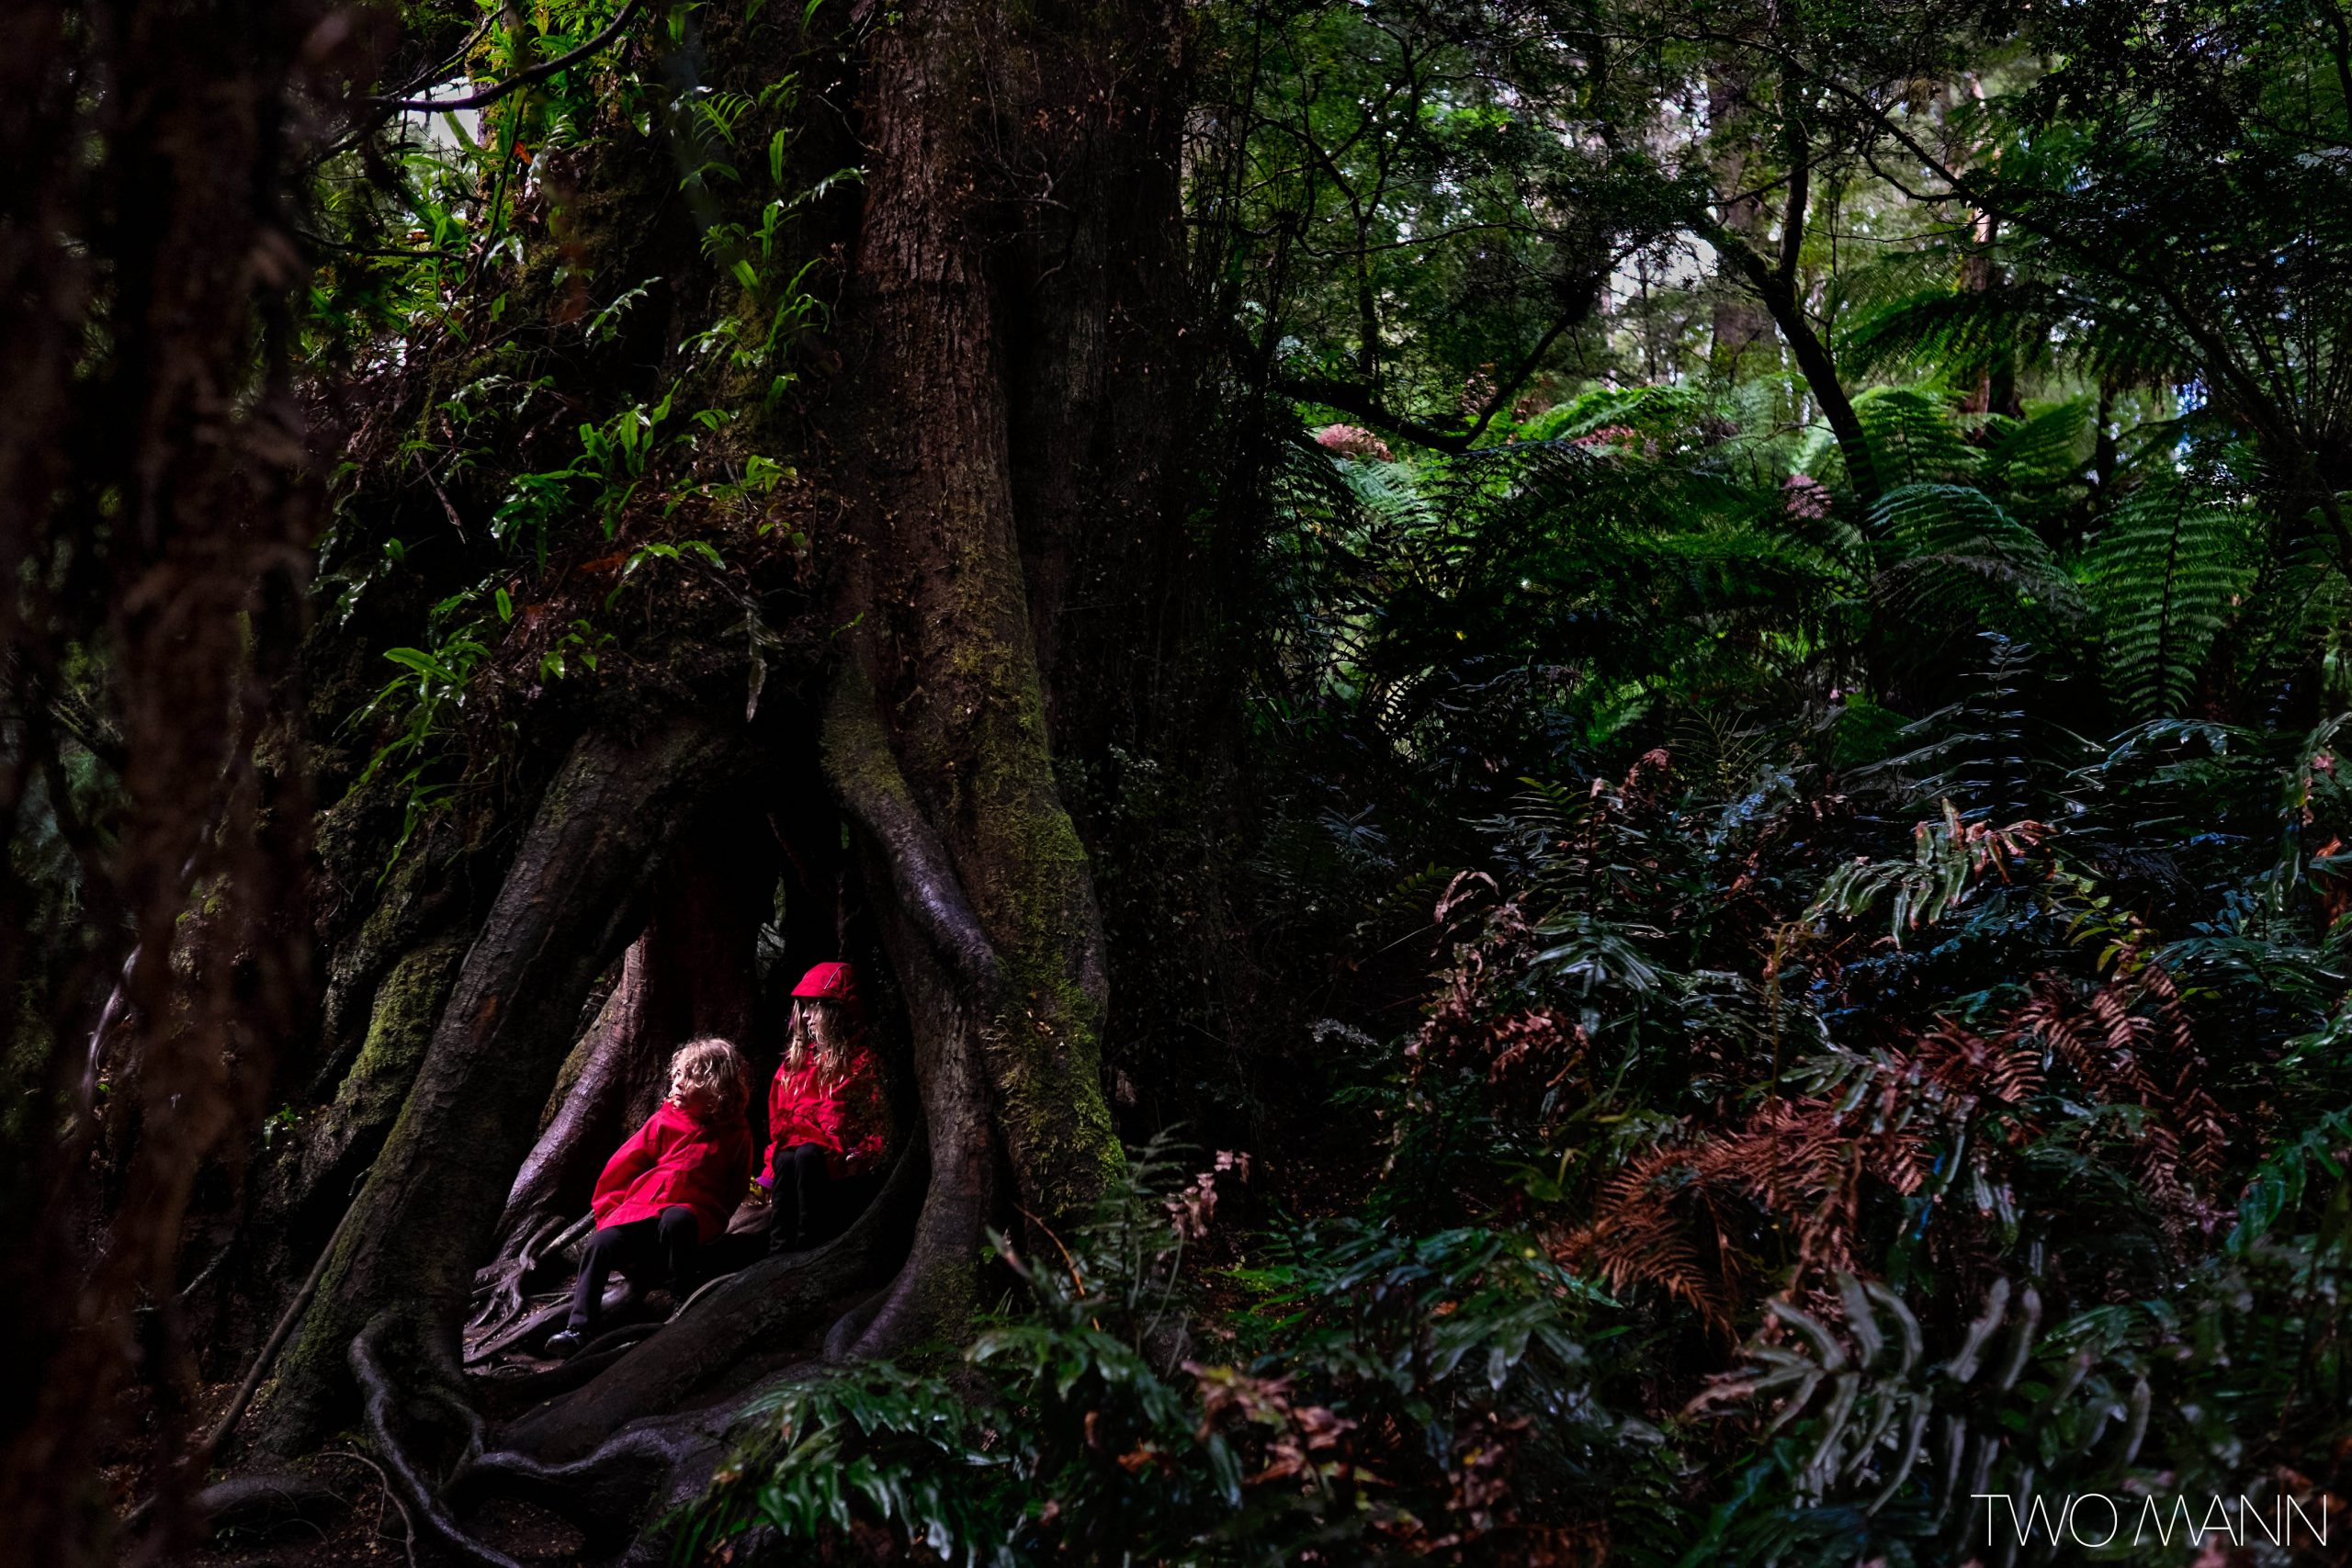 Kids hiding in hollowed tree trunk to avoid the rain storm